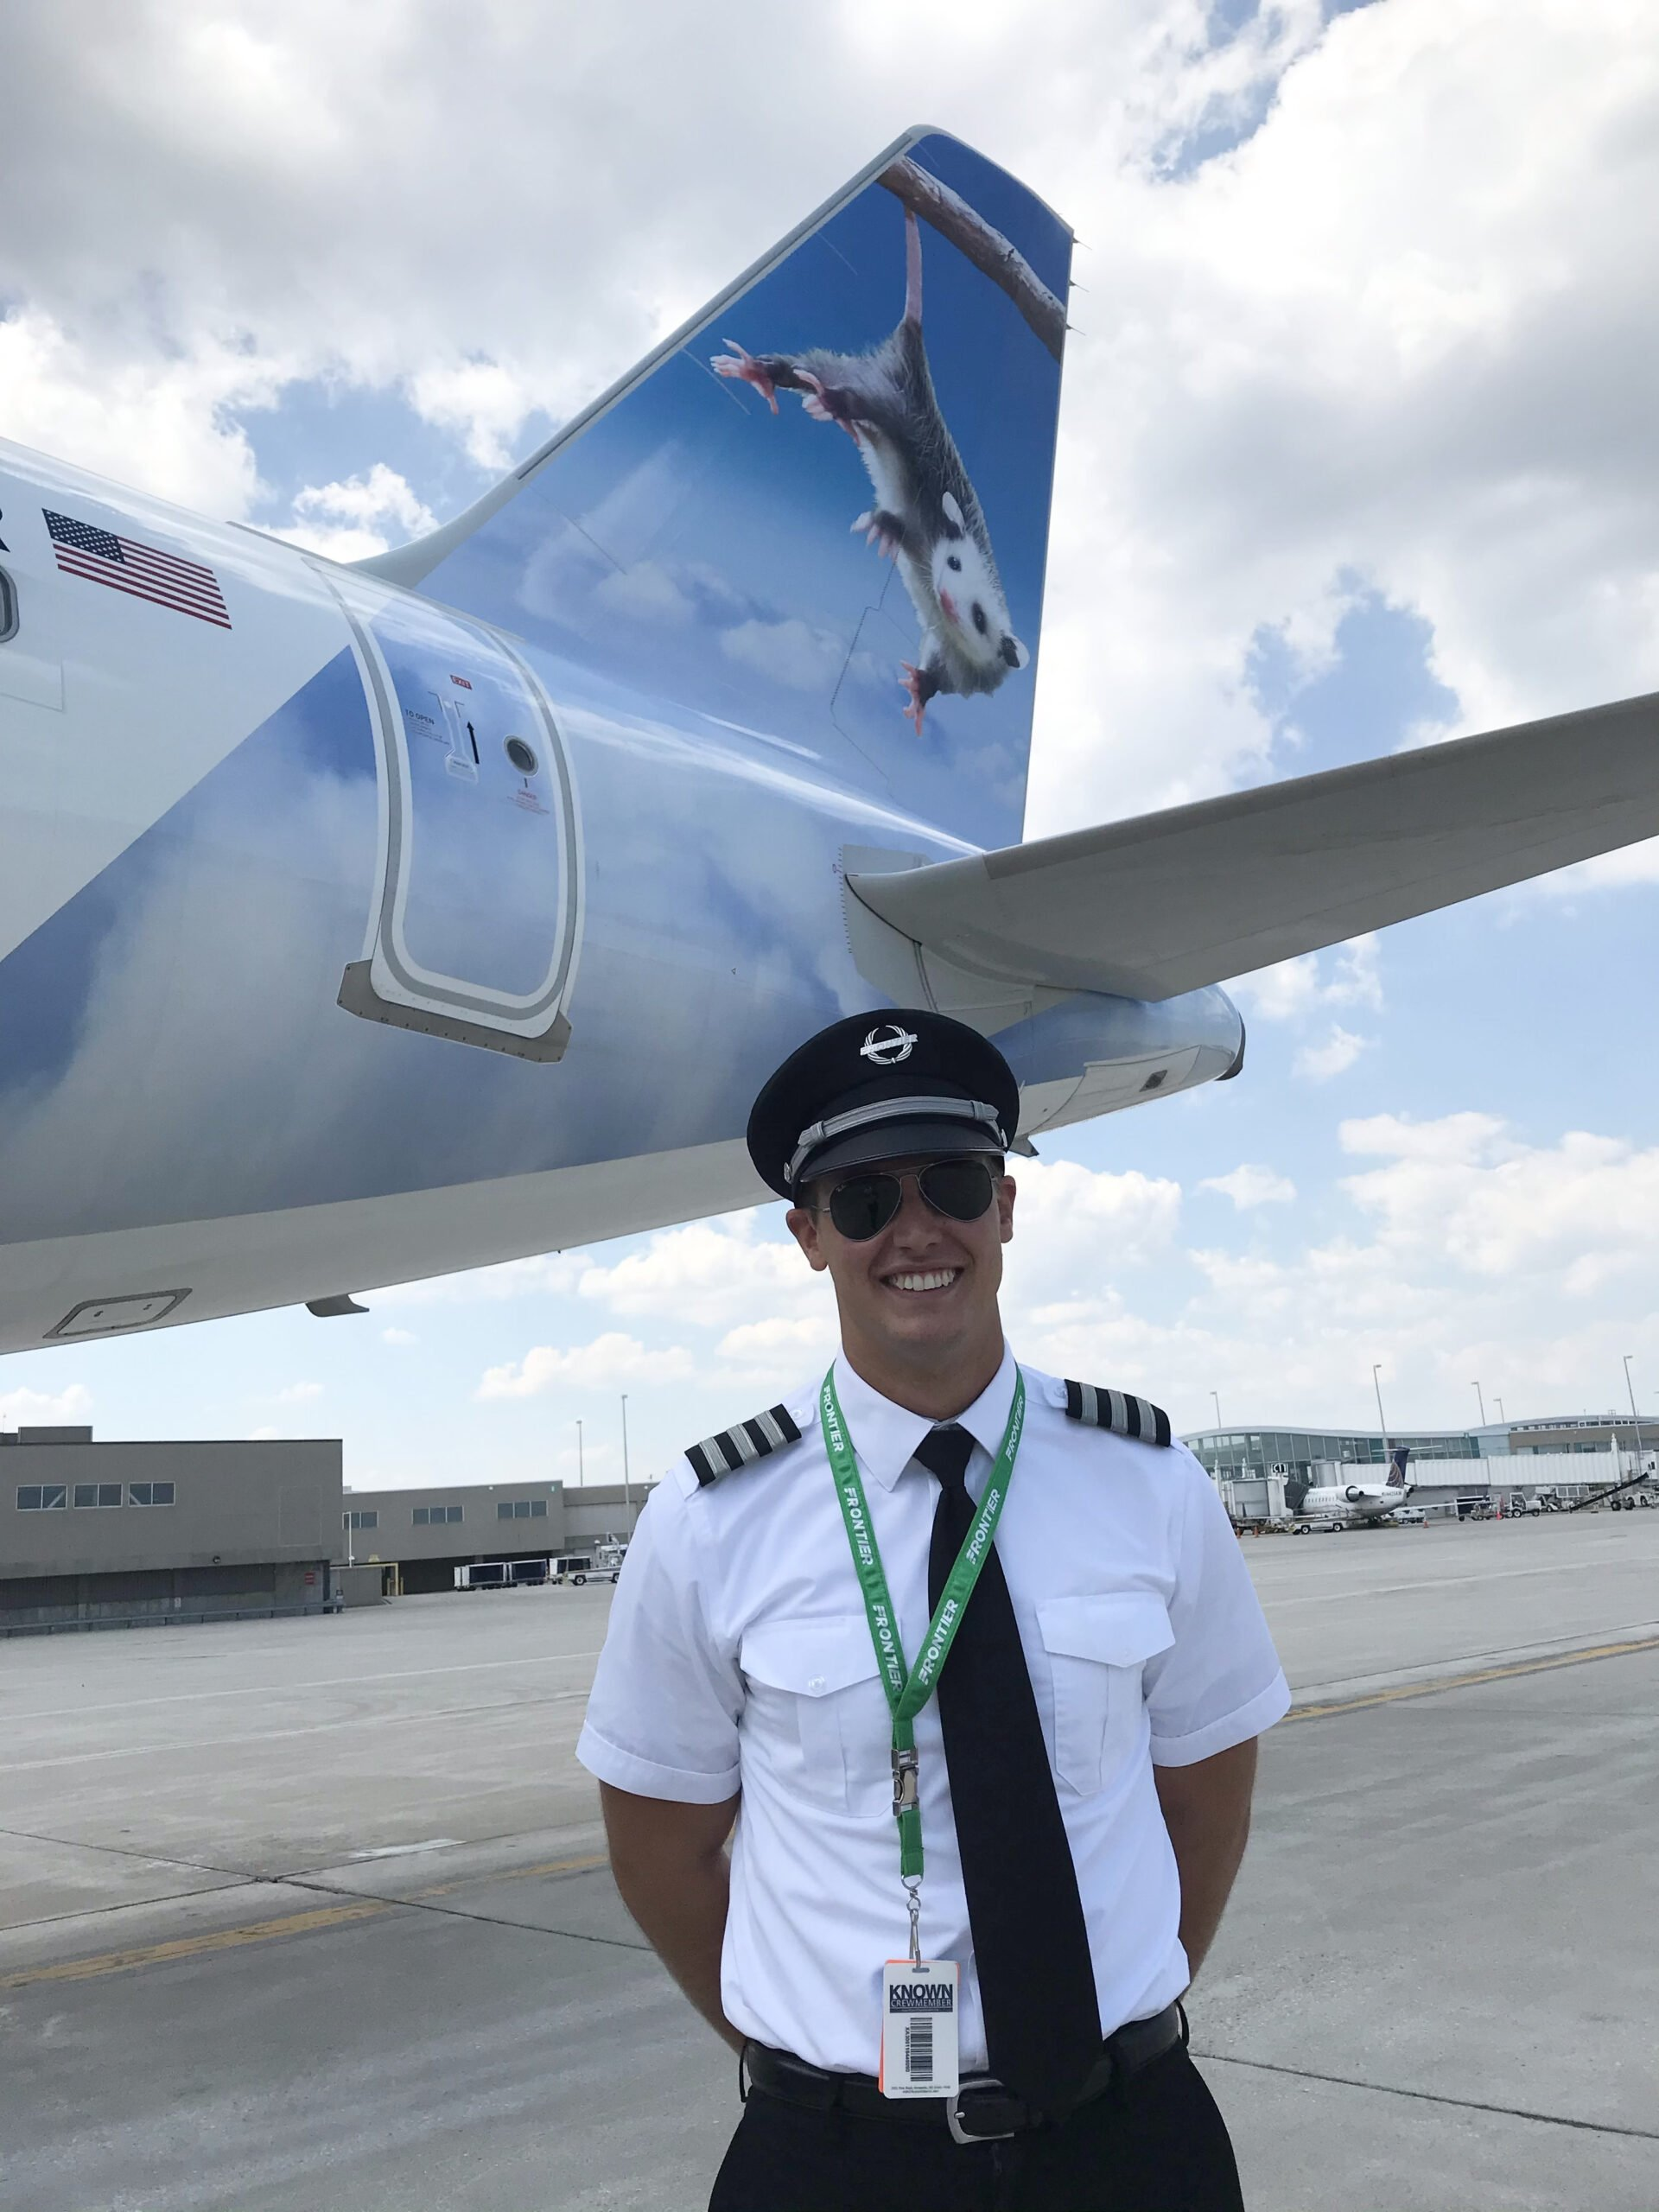 ATP Flight School Forms Pilot Pathway With Frontier Airlines